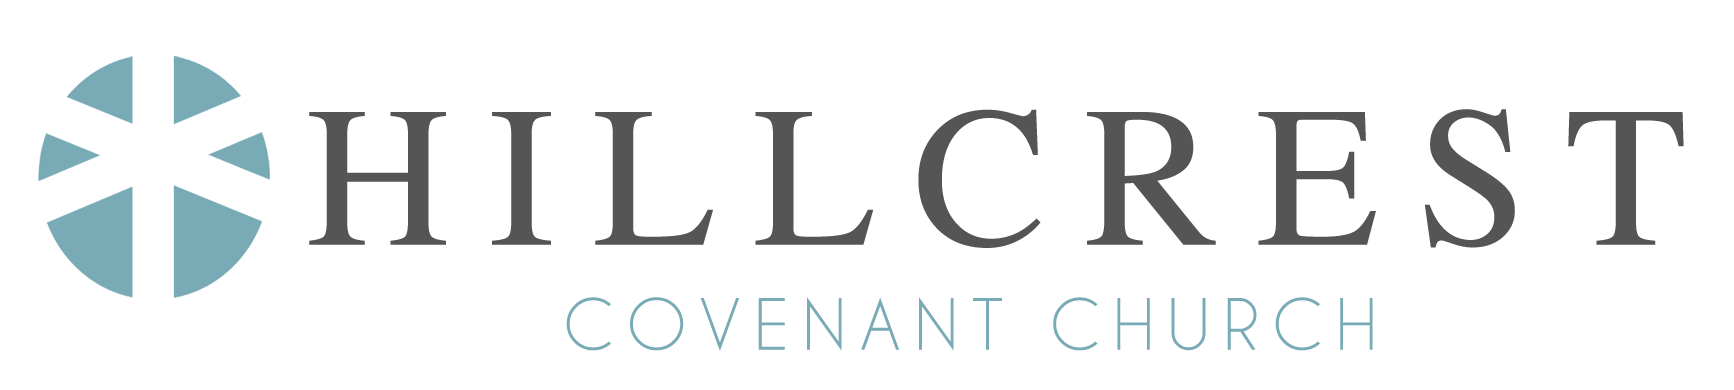 Hillcrest Covenant Church